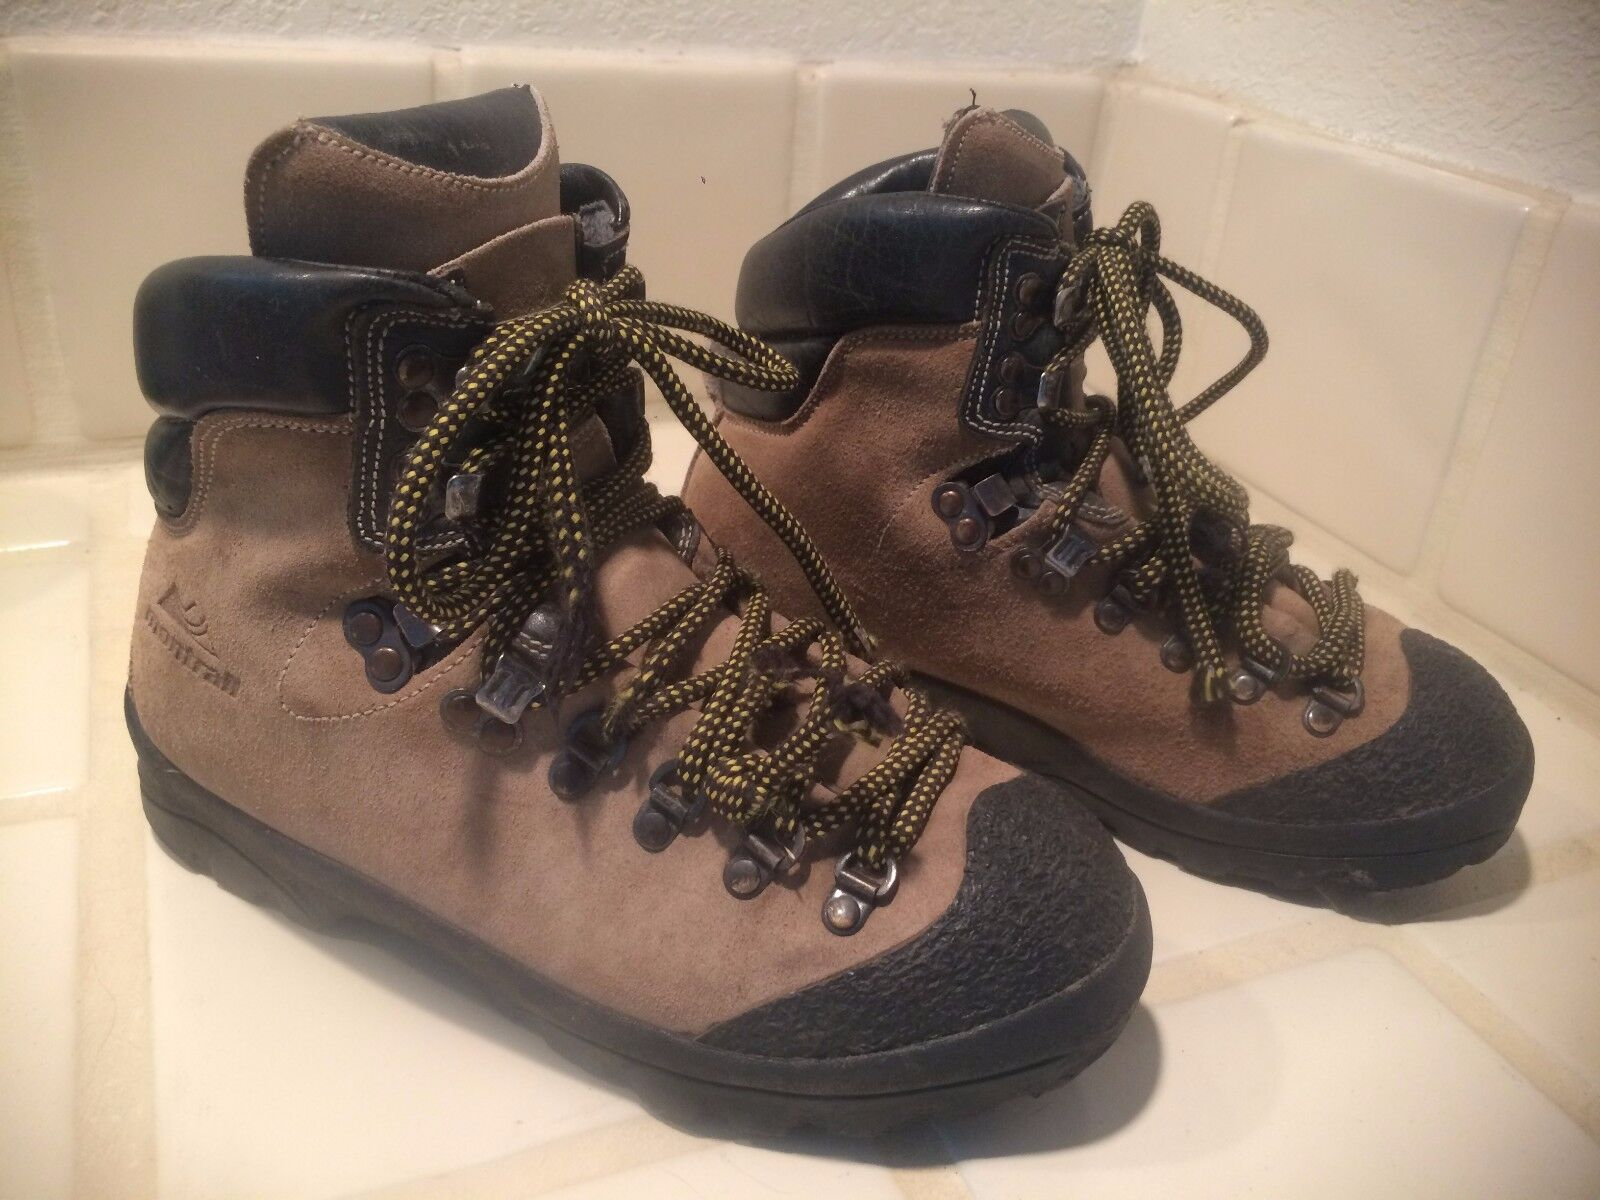 Vintage Women's Montrail Leather Hiking Boots Made in   Size 7.5  factory outlet online discount sale